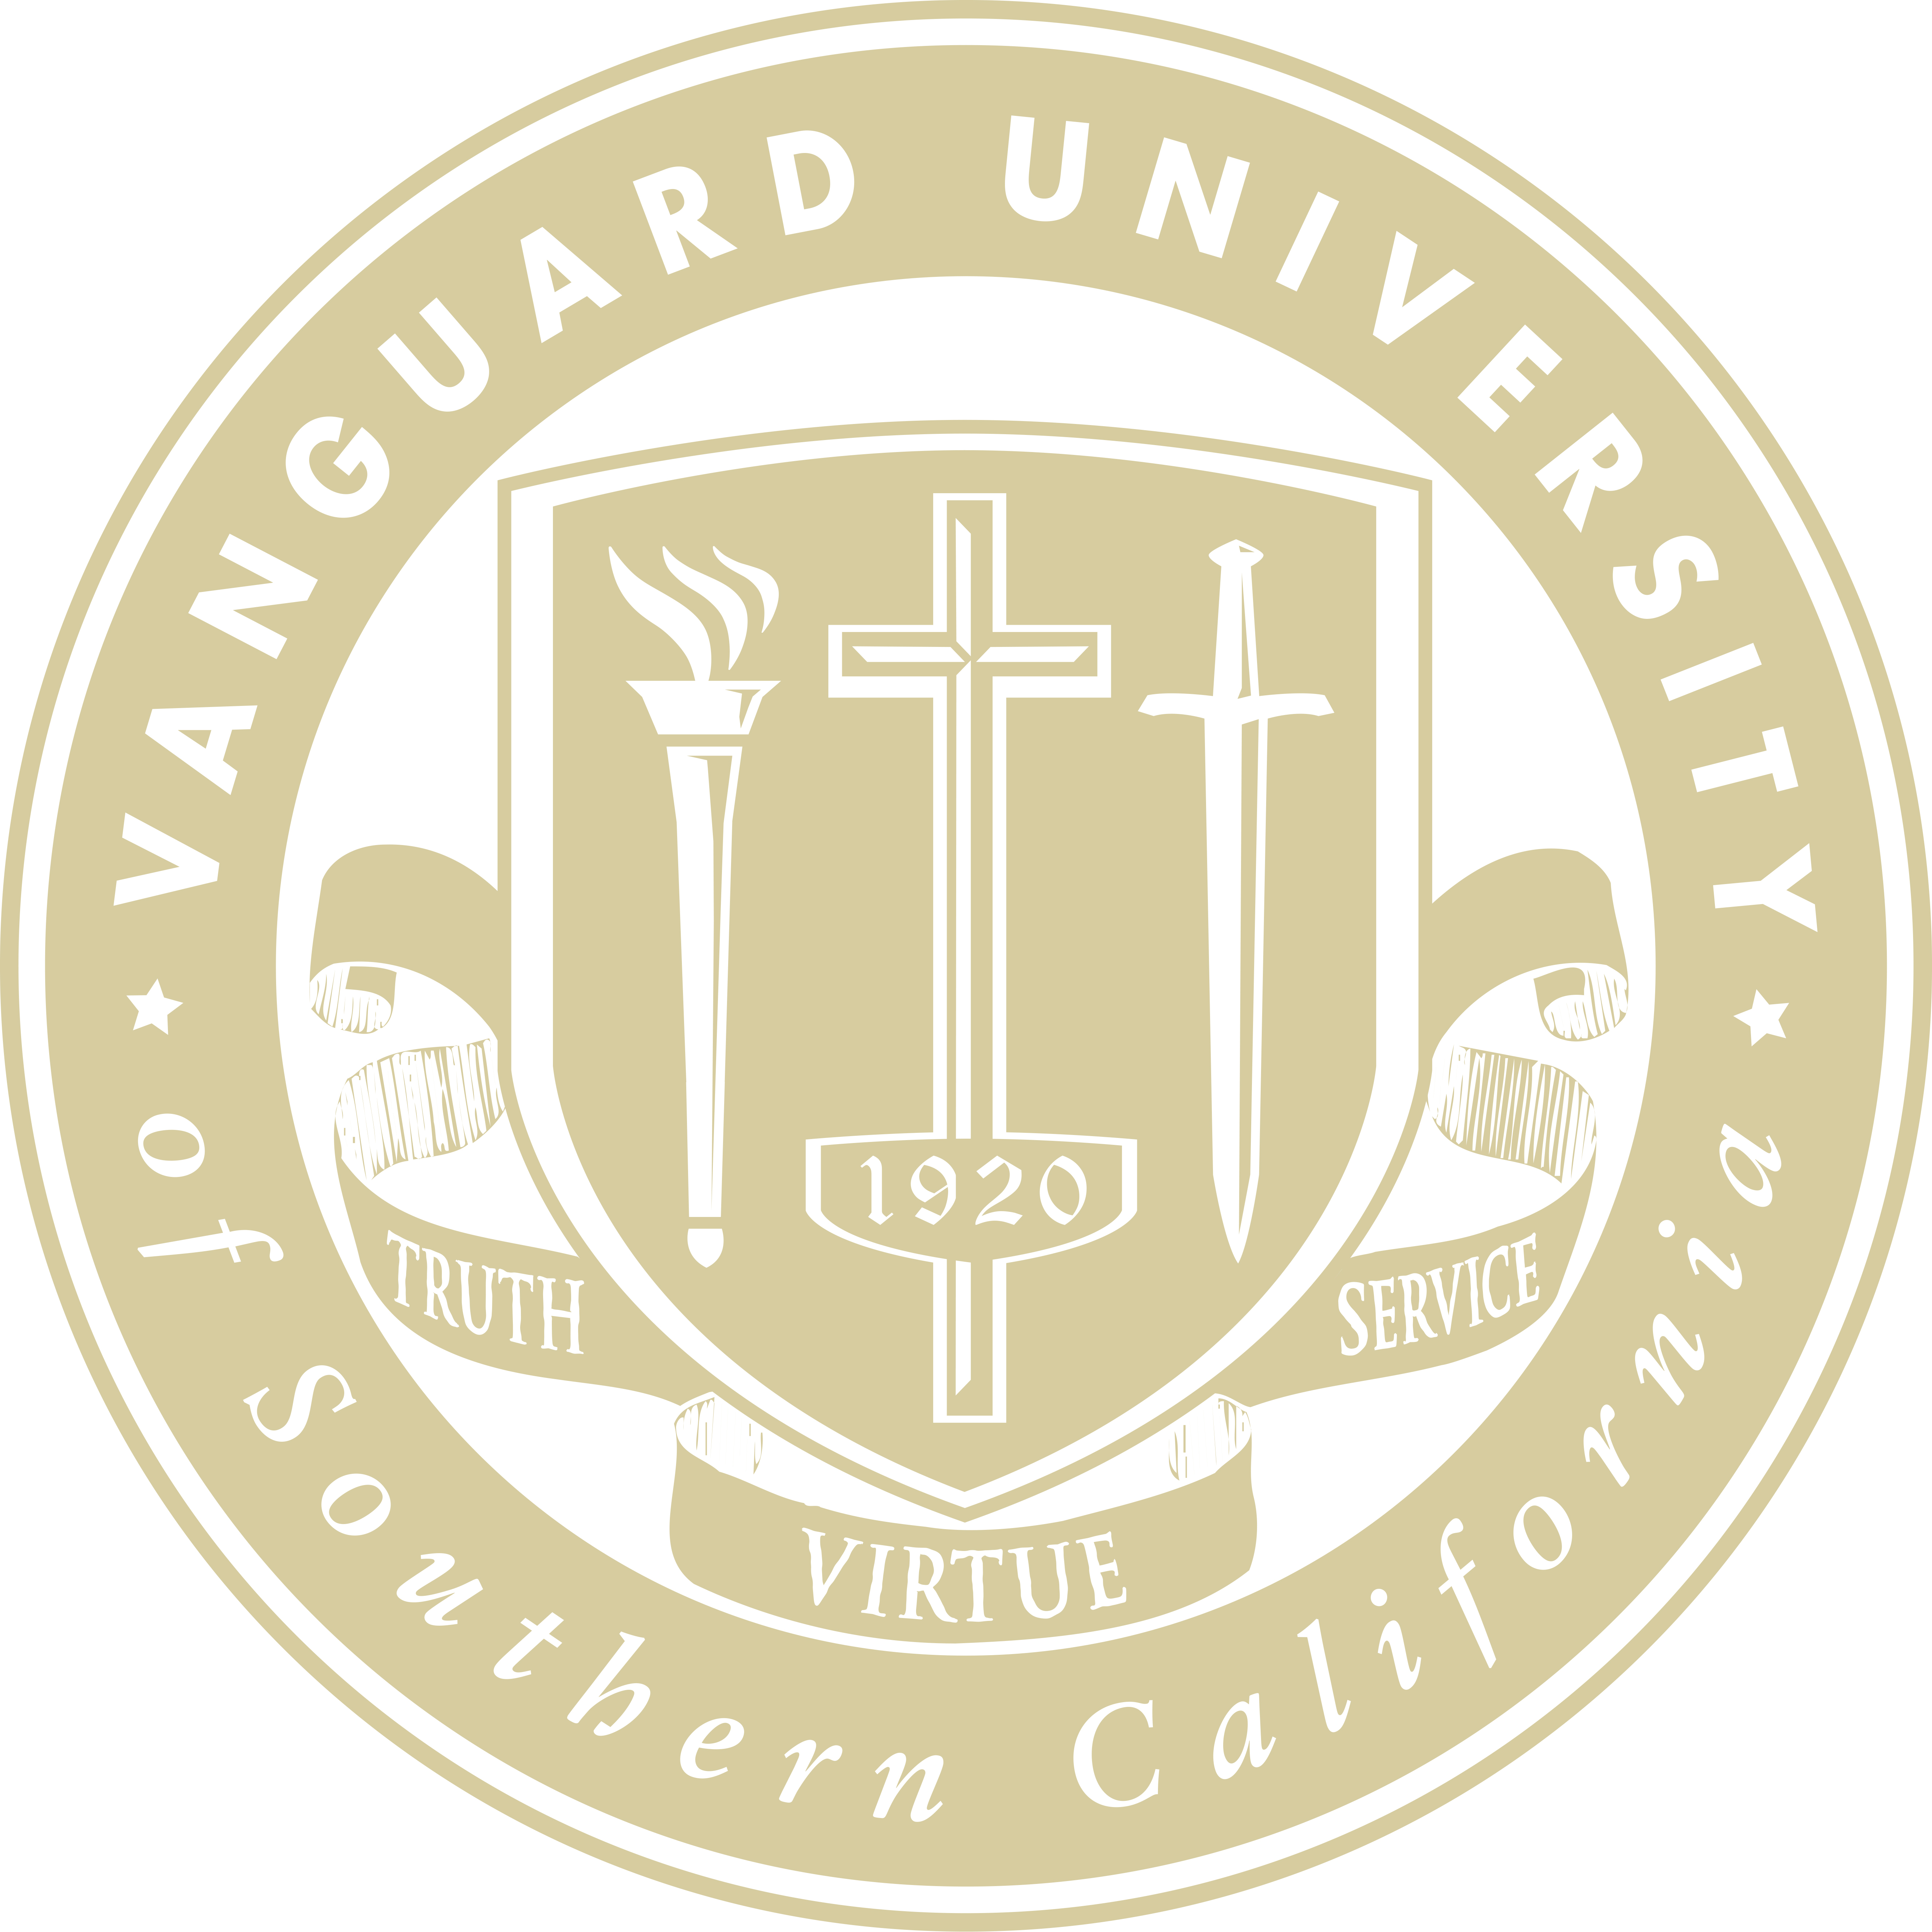 The official seal of Vanguard University